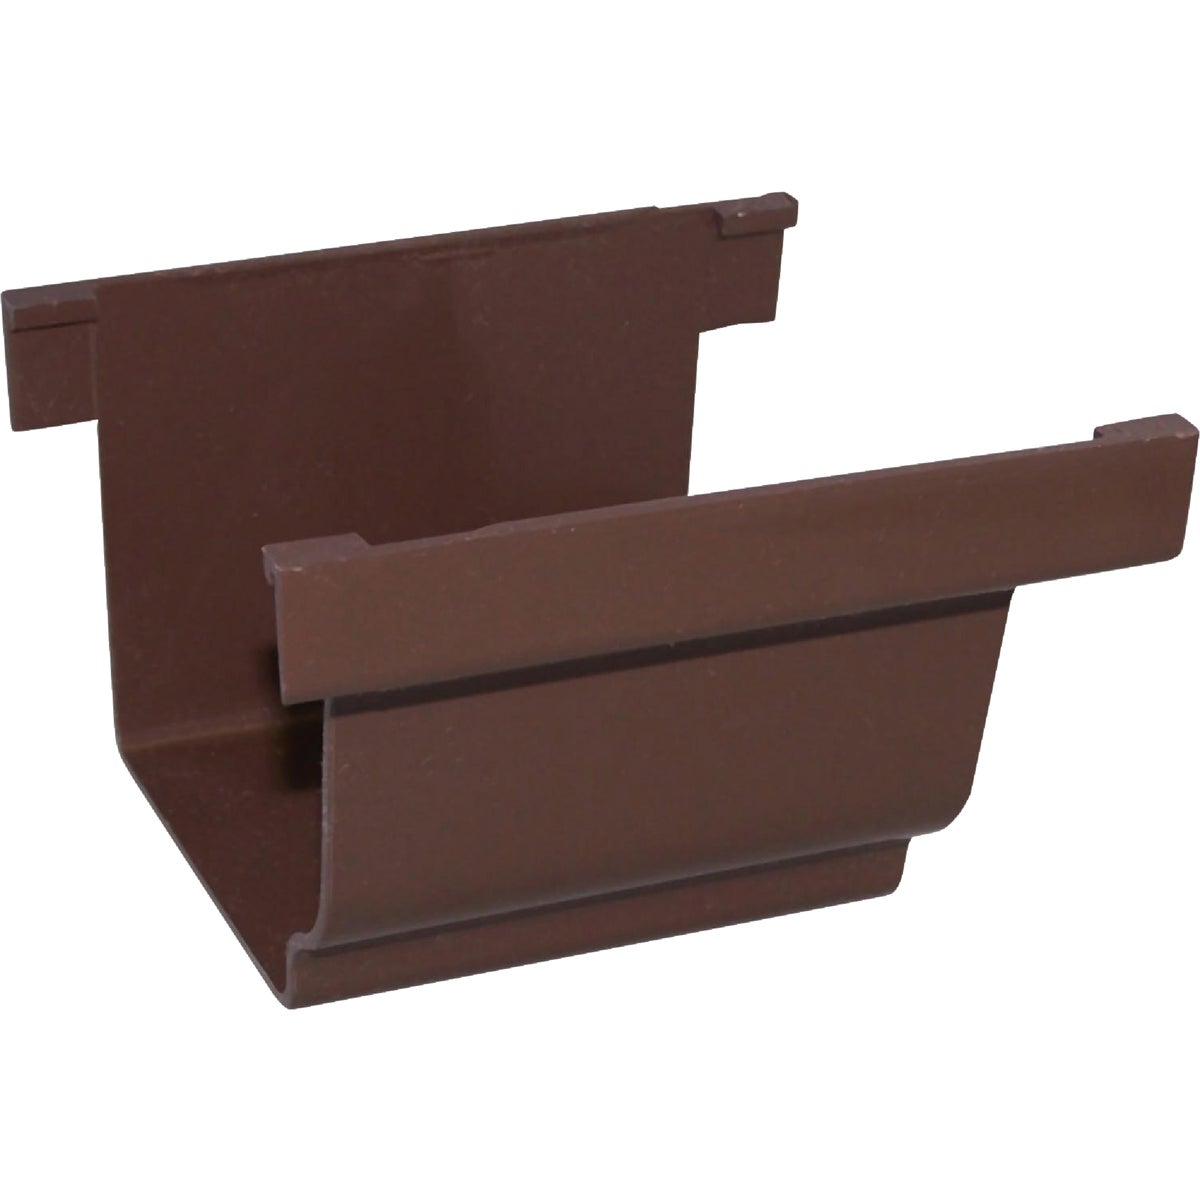 BRN GUTTER CONNECTOR - AB105K by Genova Products